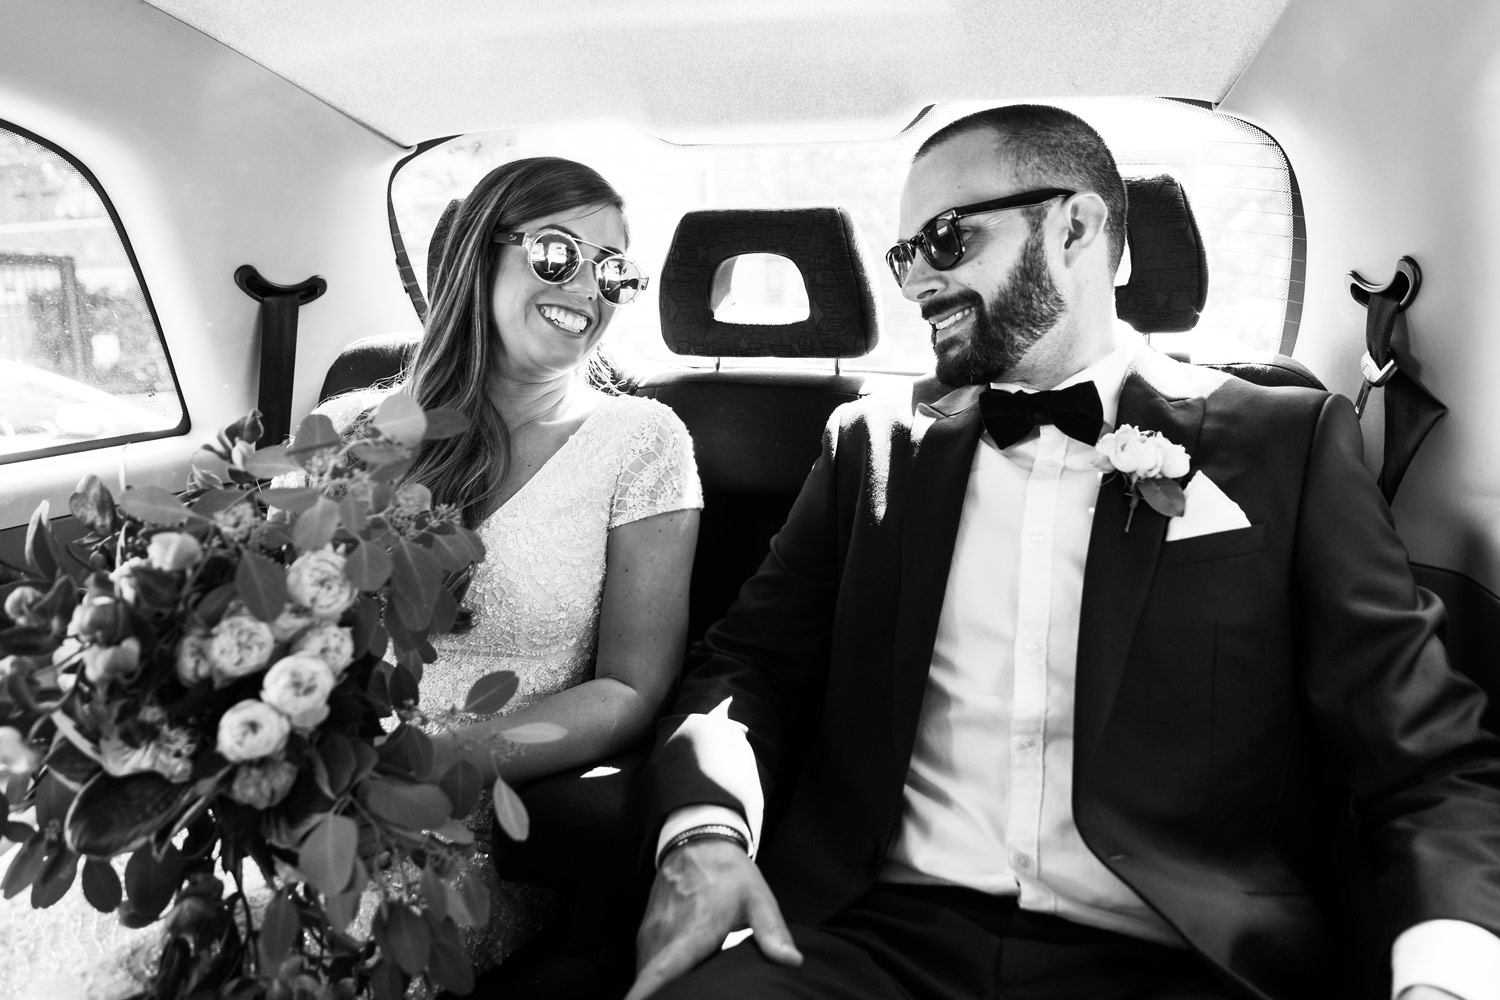 A wedding couple pose in sunglasses in the taxi after their wedding at Asia House in London.